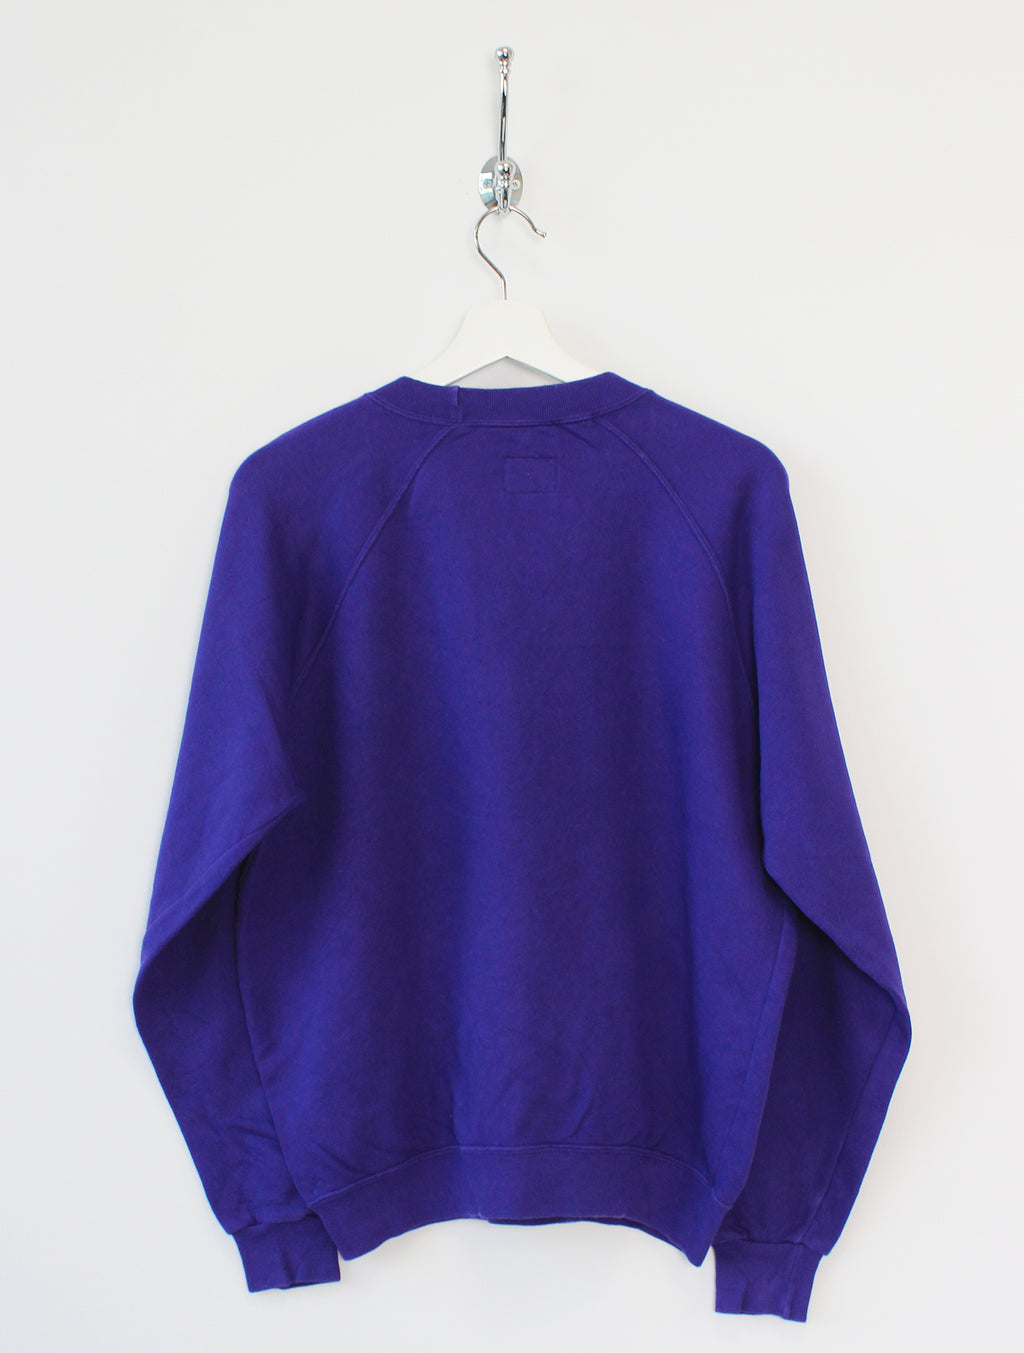 Women's Benetton Sweatshirt (M)